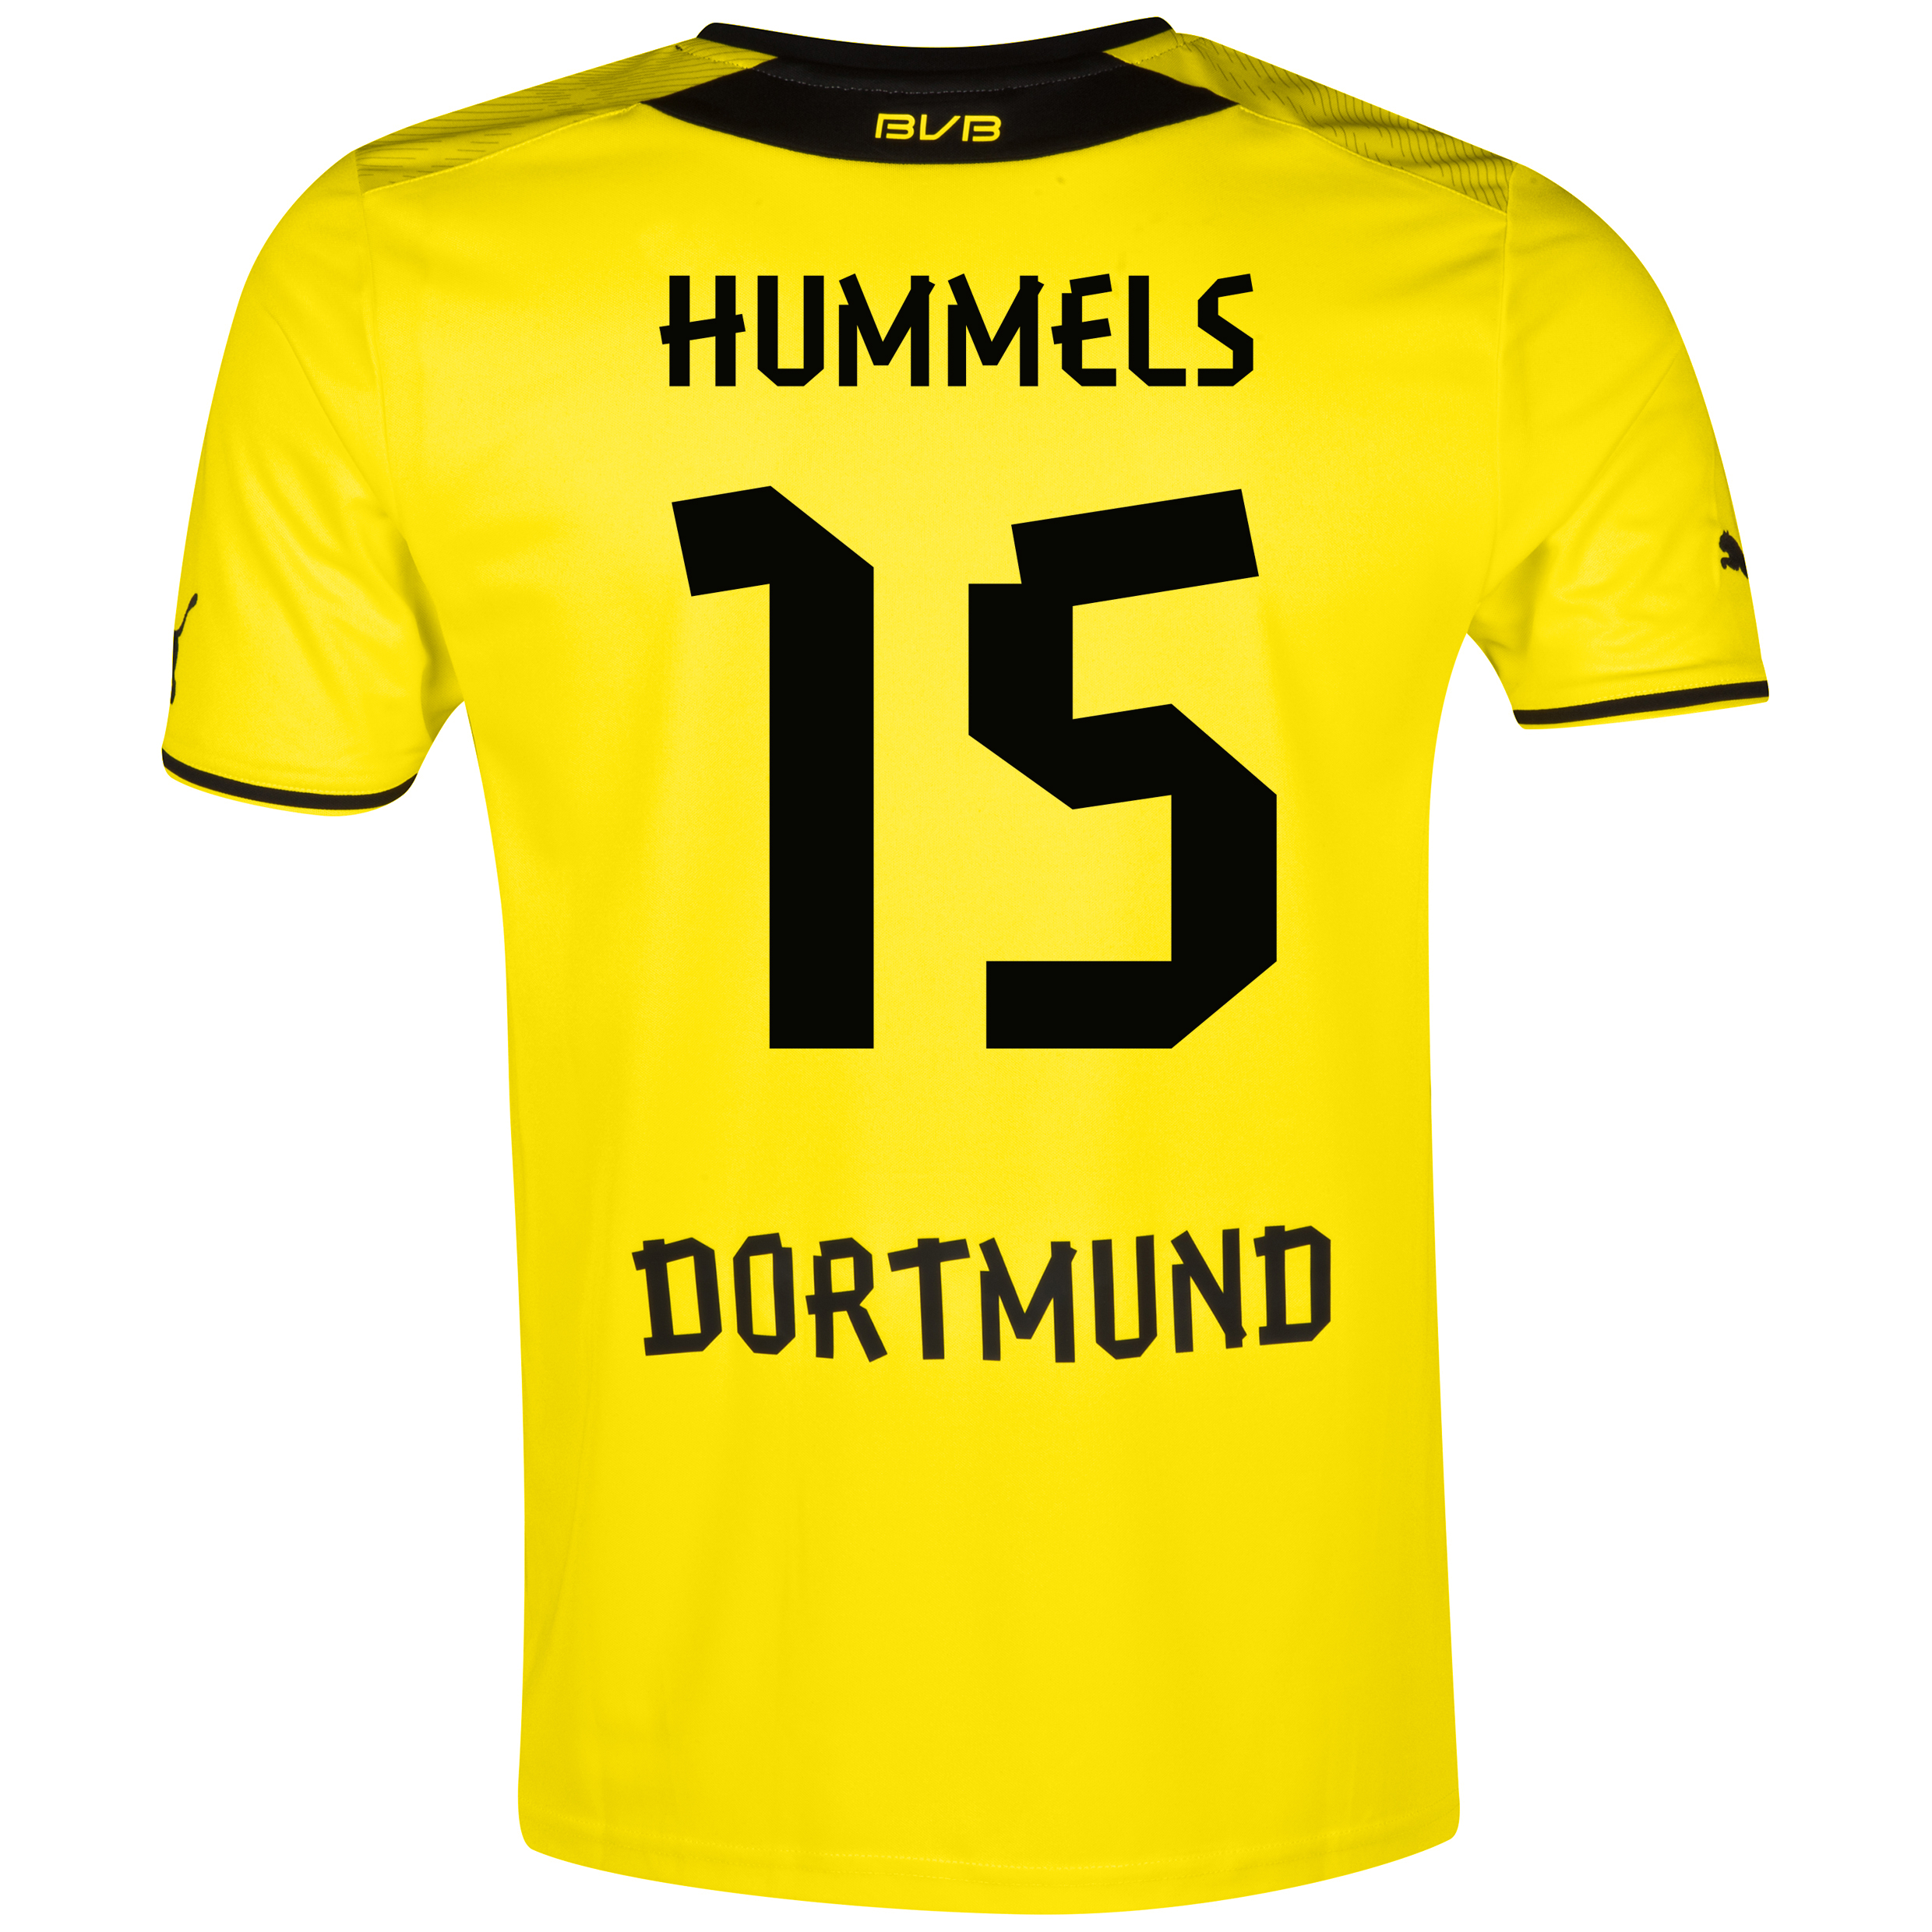 BVB Home Shirt 2013/14 with Hummels 15 printing